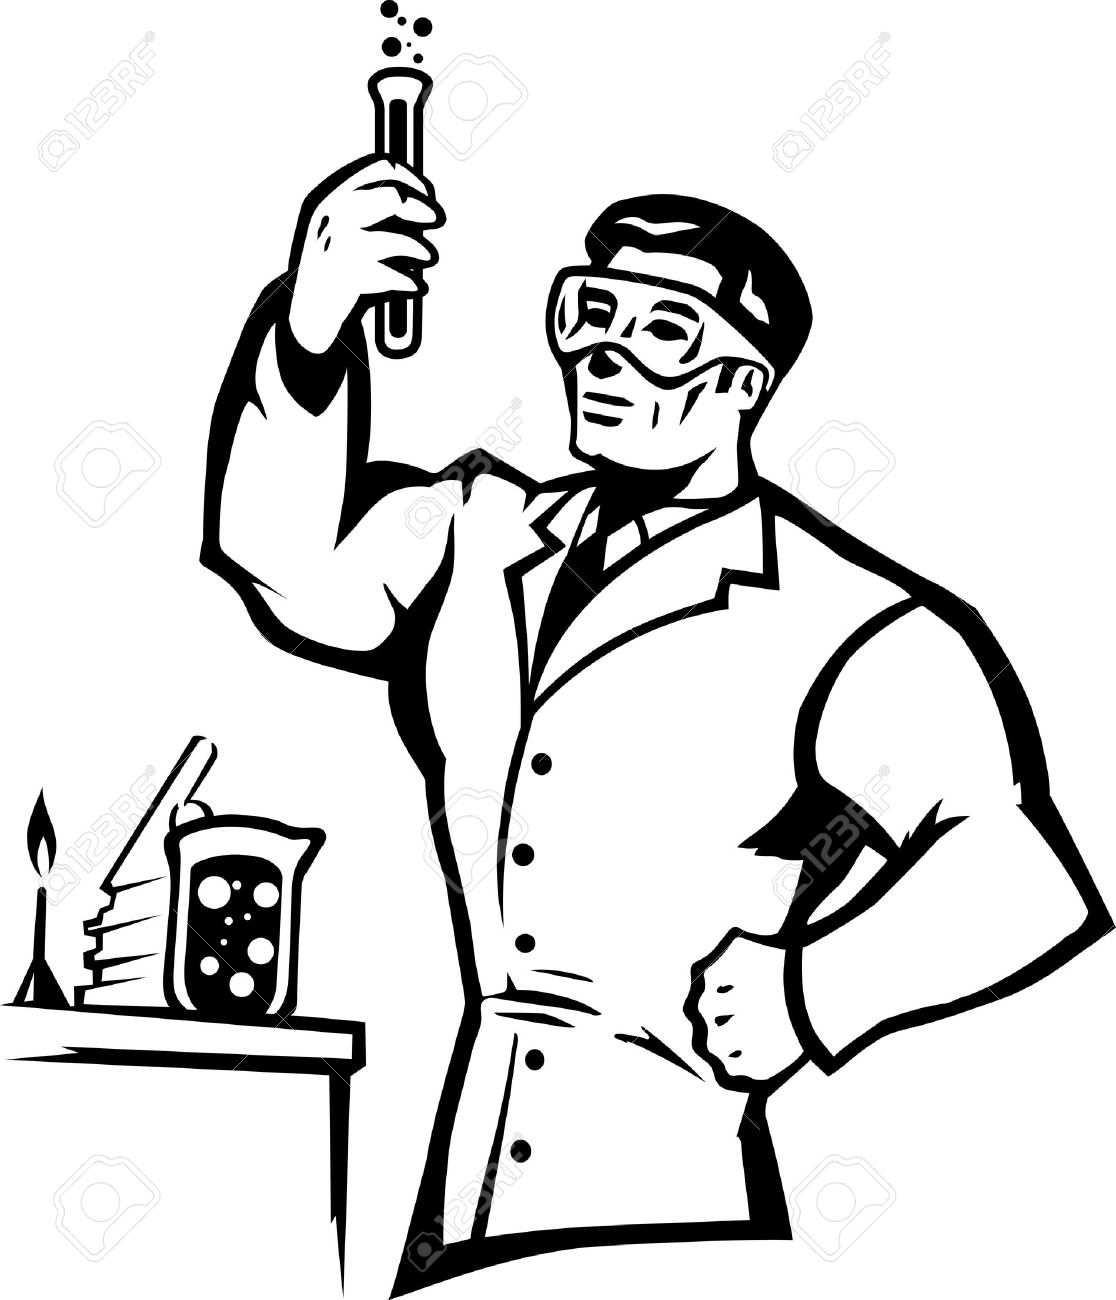 Stylized scientist mixing chemicals in a bold way..